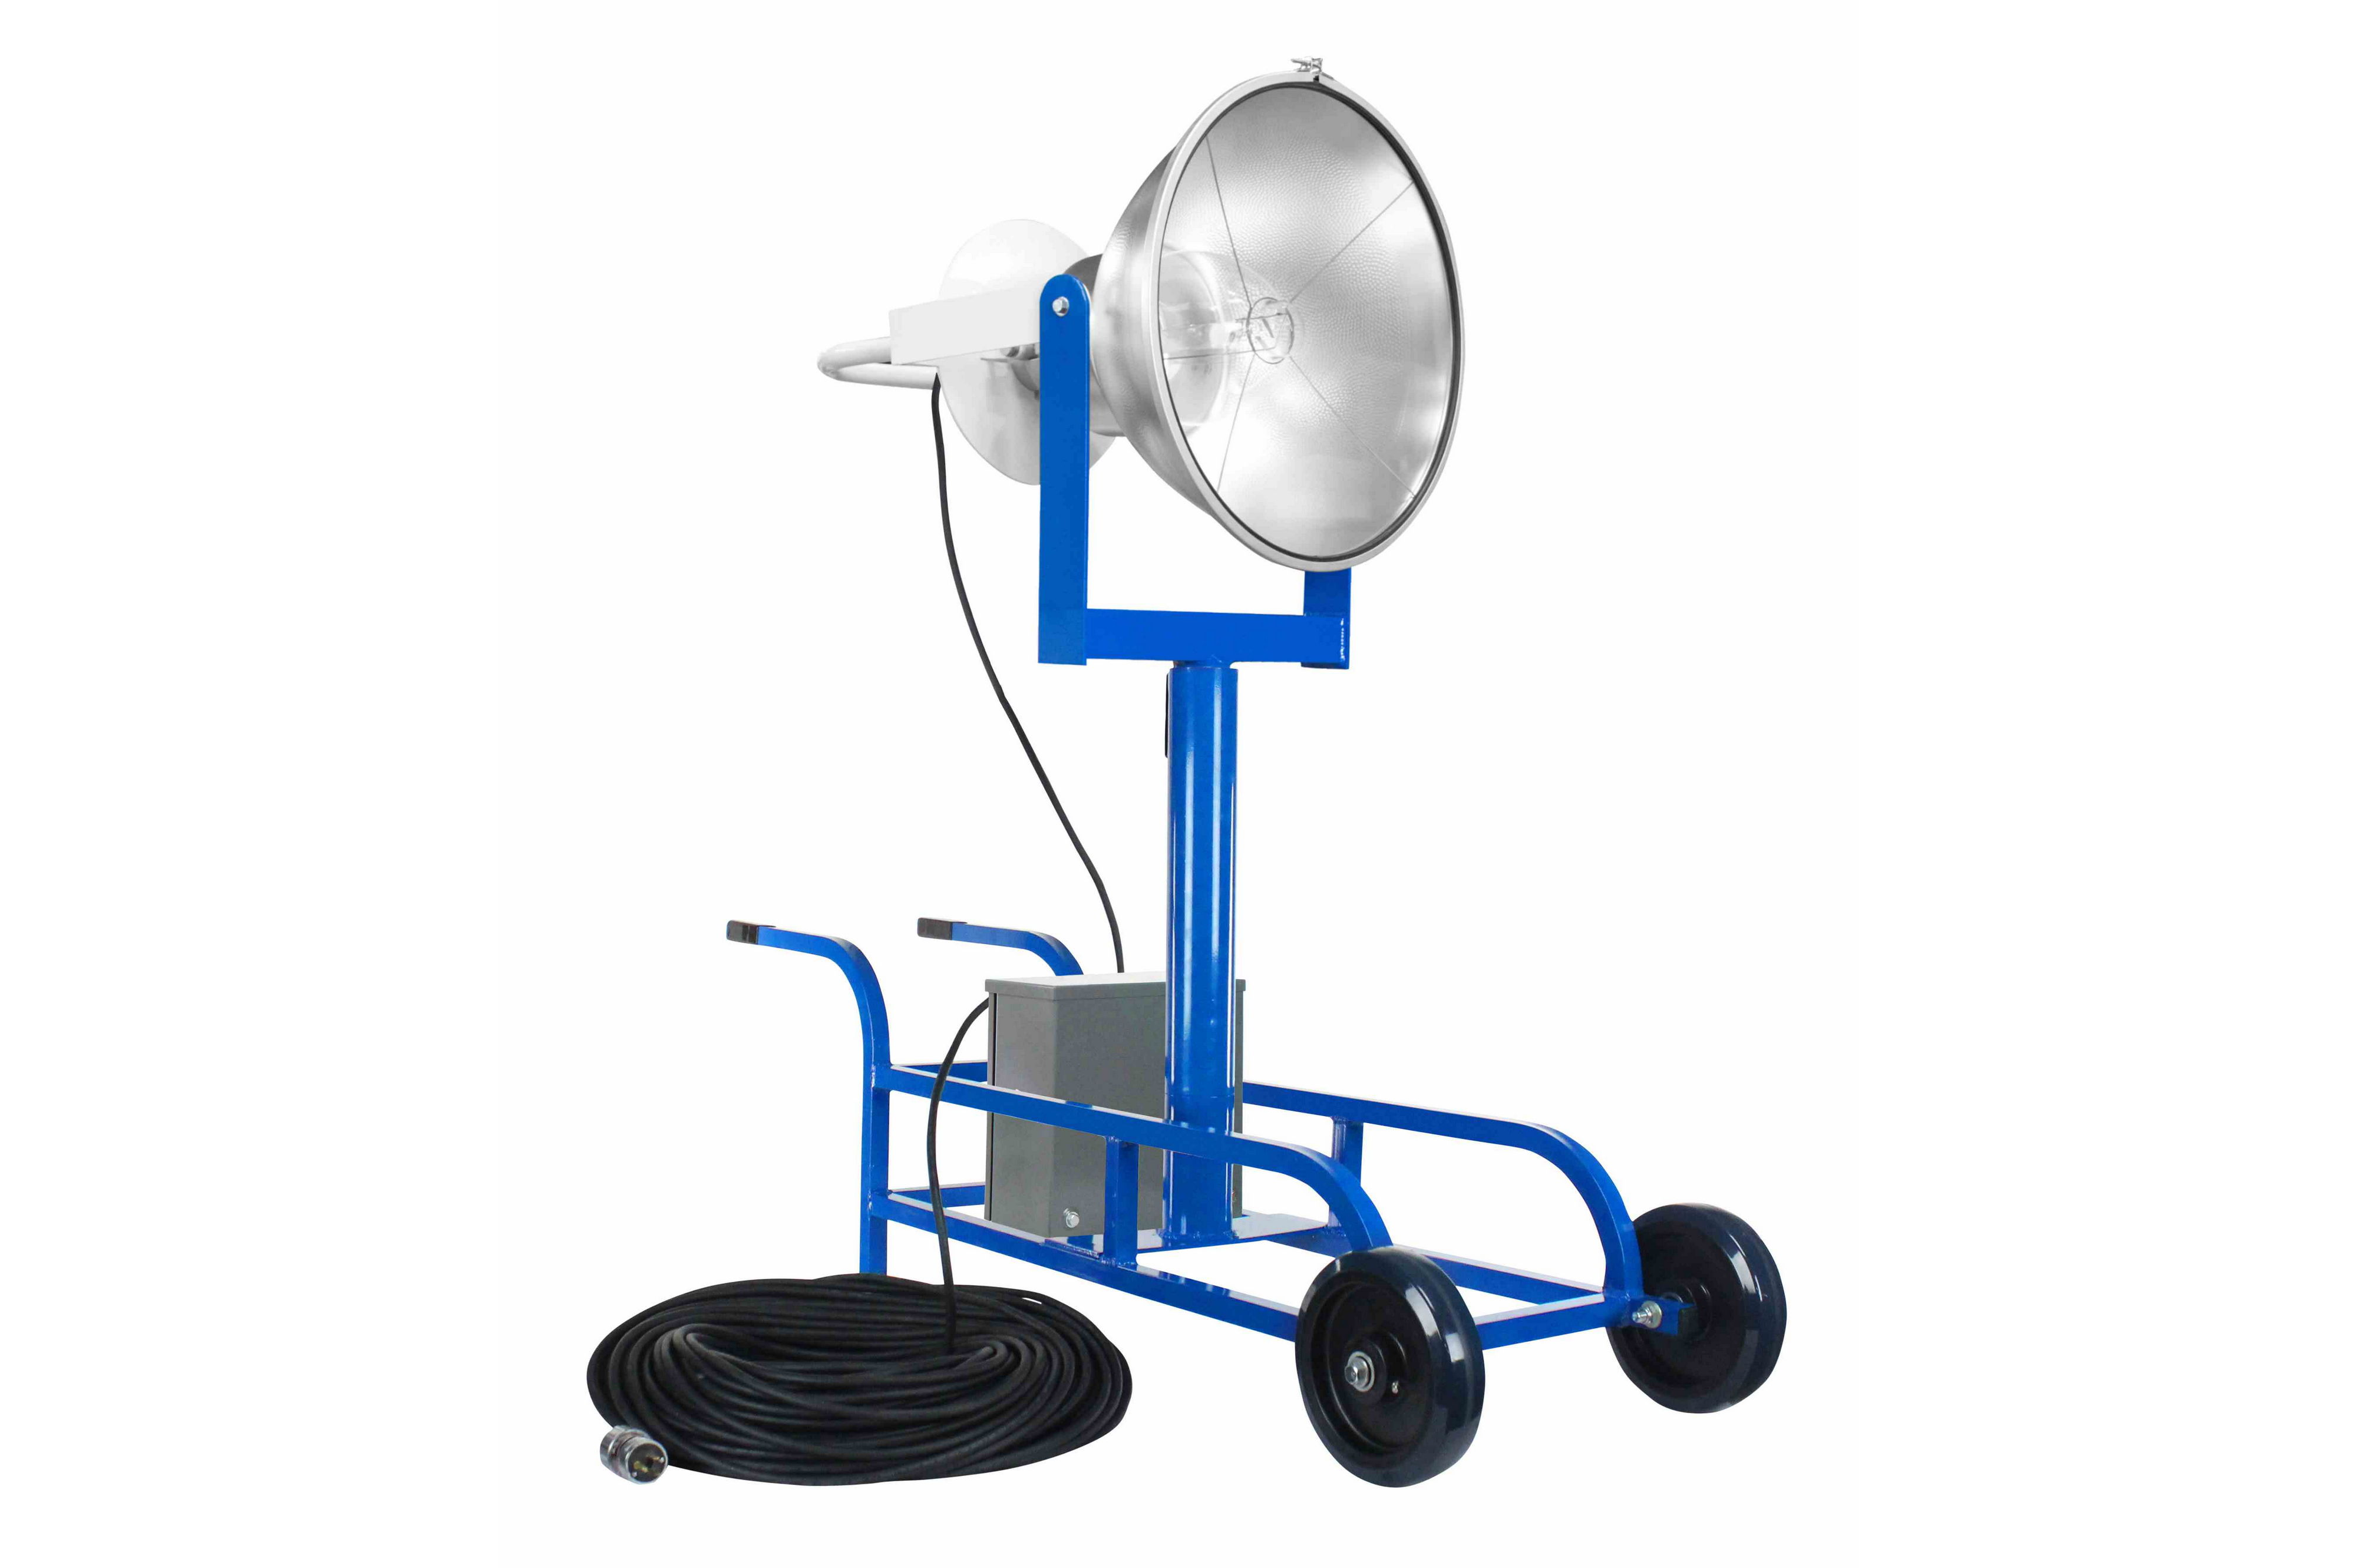 Portable Metal Halide Lights : W metal halide searchlight portable wheelbarrow cart